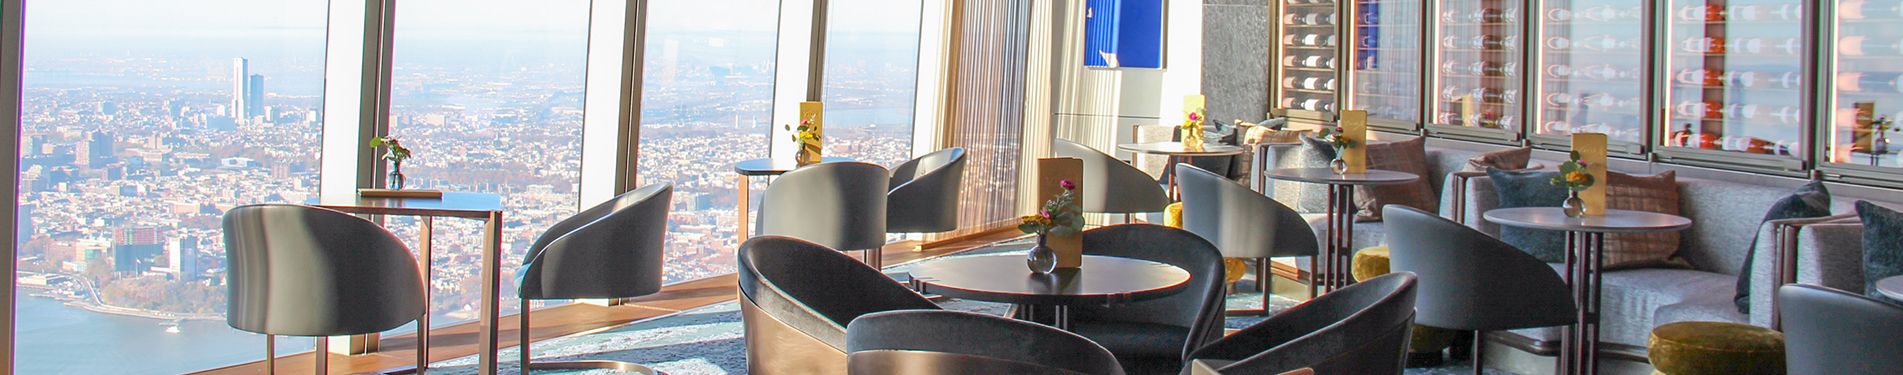 Hudson Yards EDGE: Restaurant and Visitor Experience